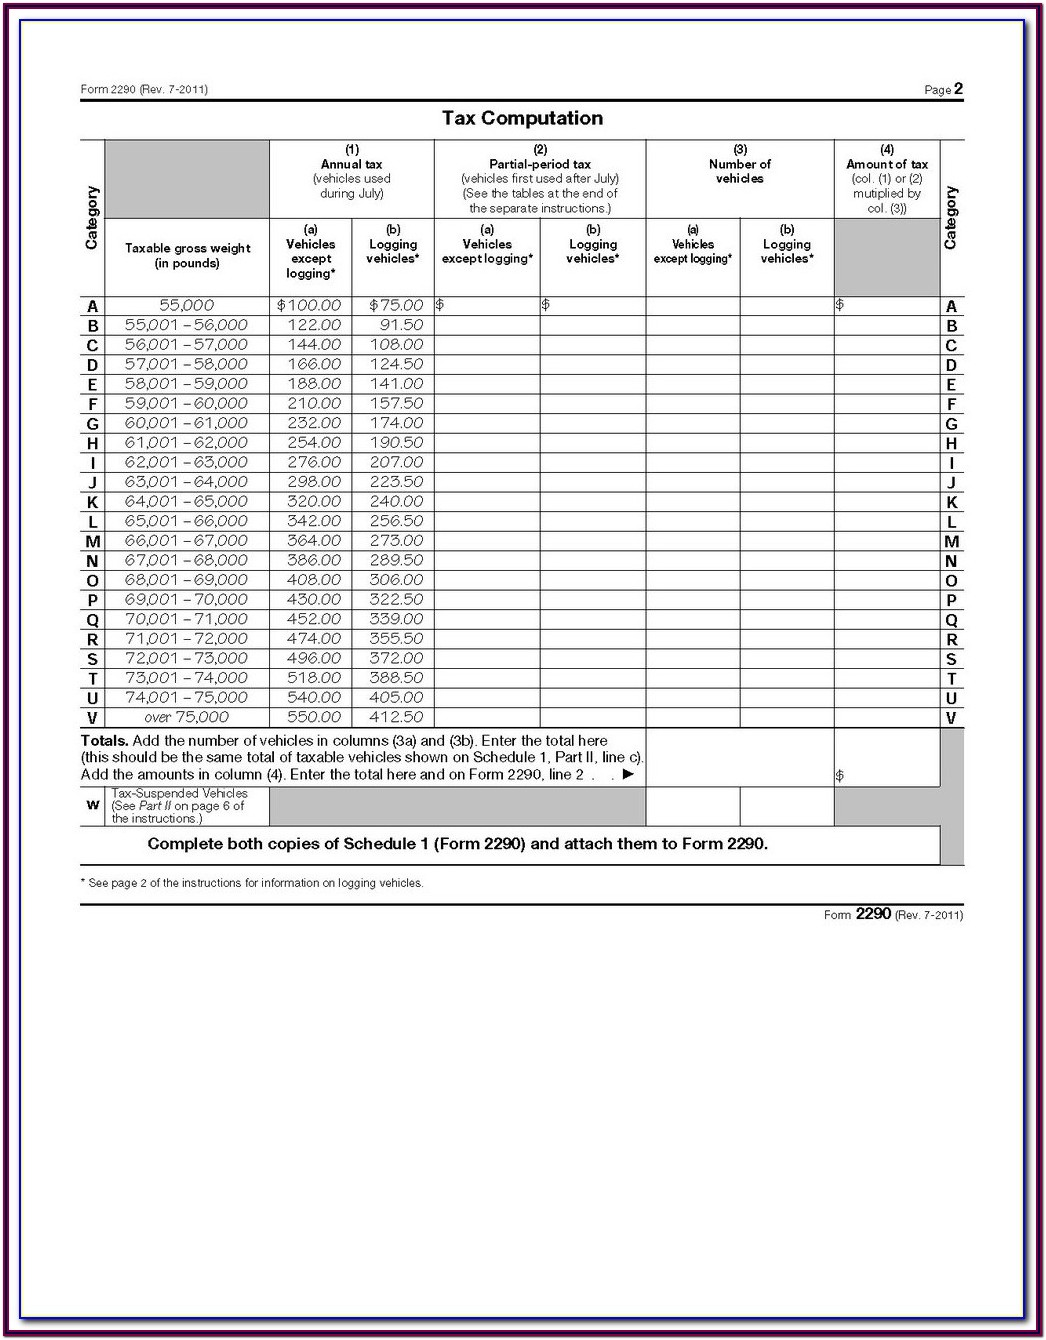 How To Fill Out Form 2290